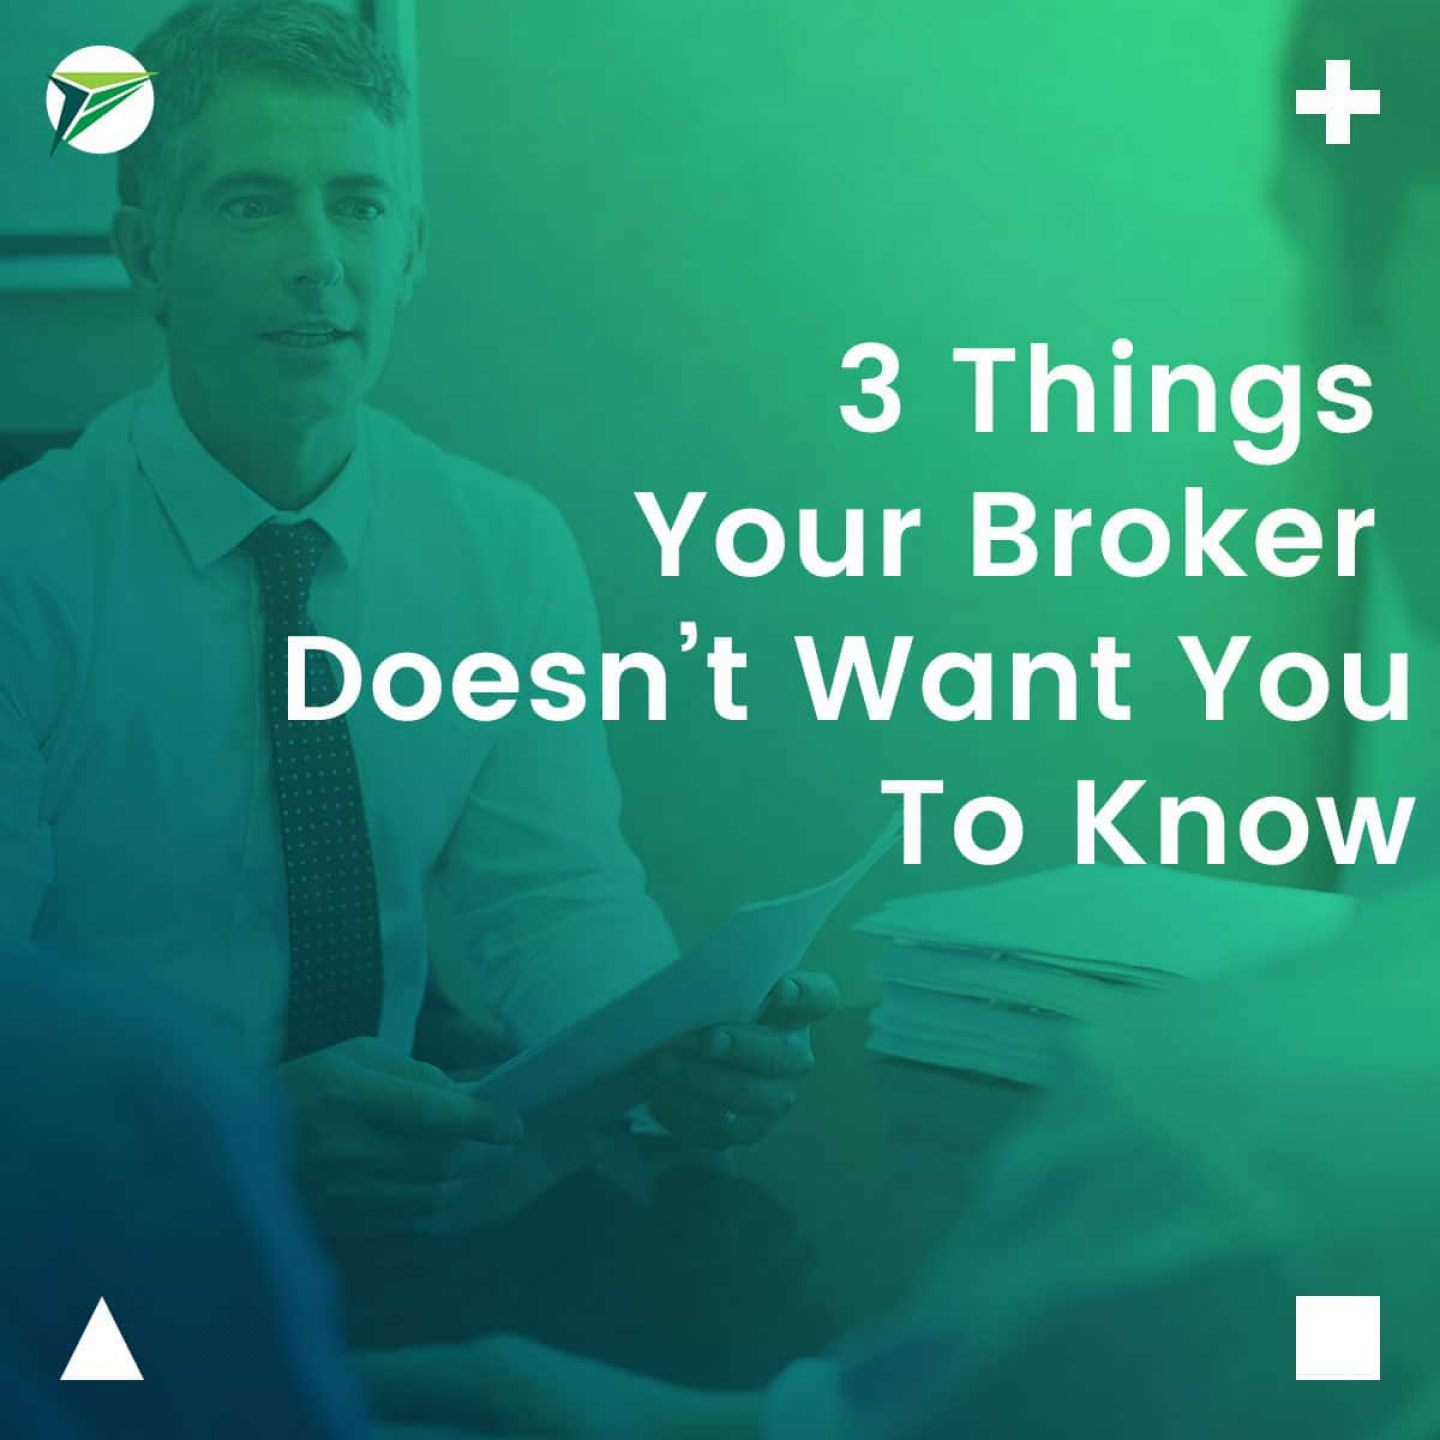 3-Things-Your-Broker-Doesnt-Want-You-To-Know